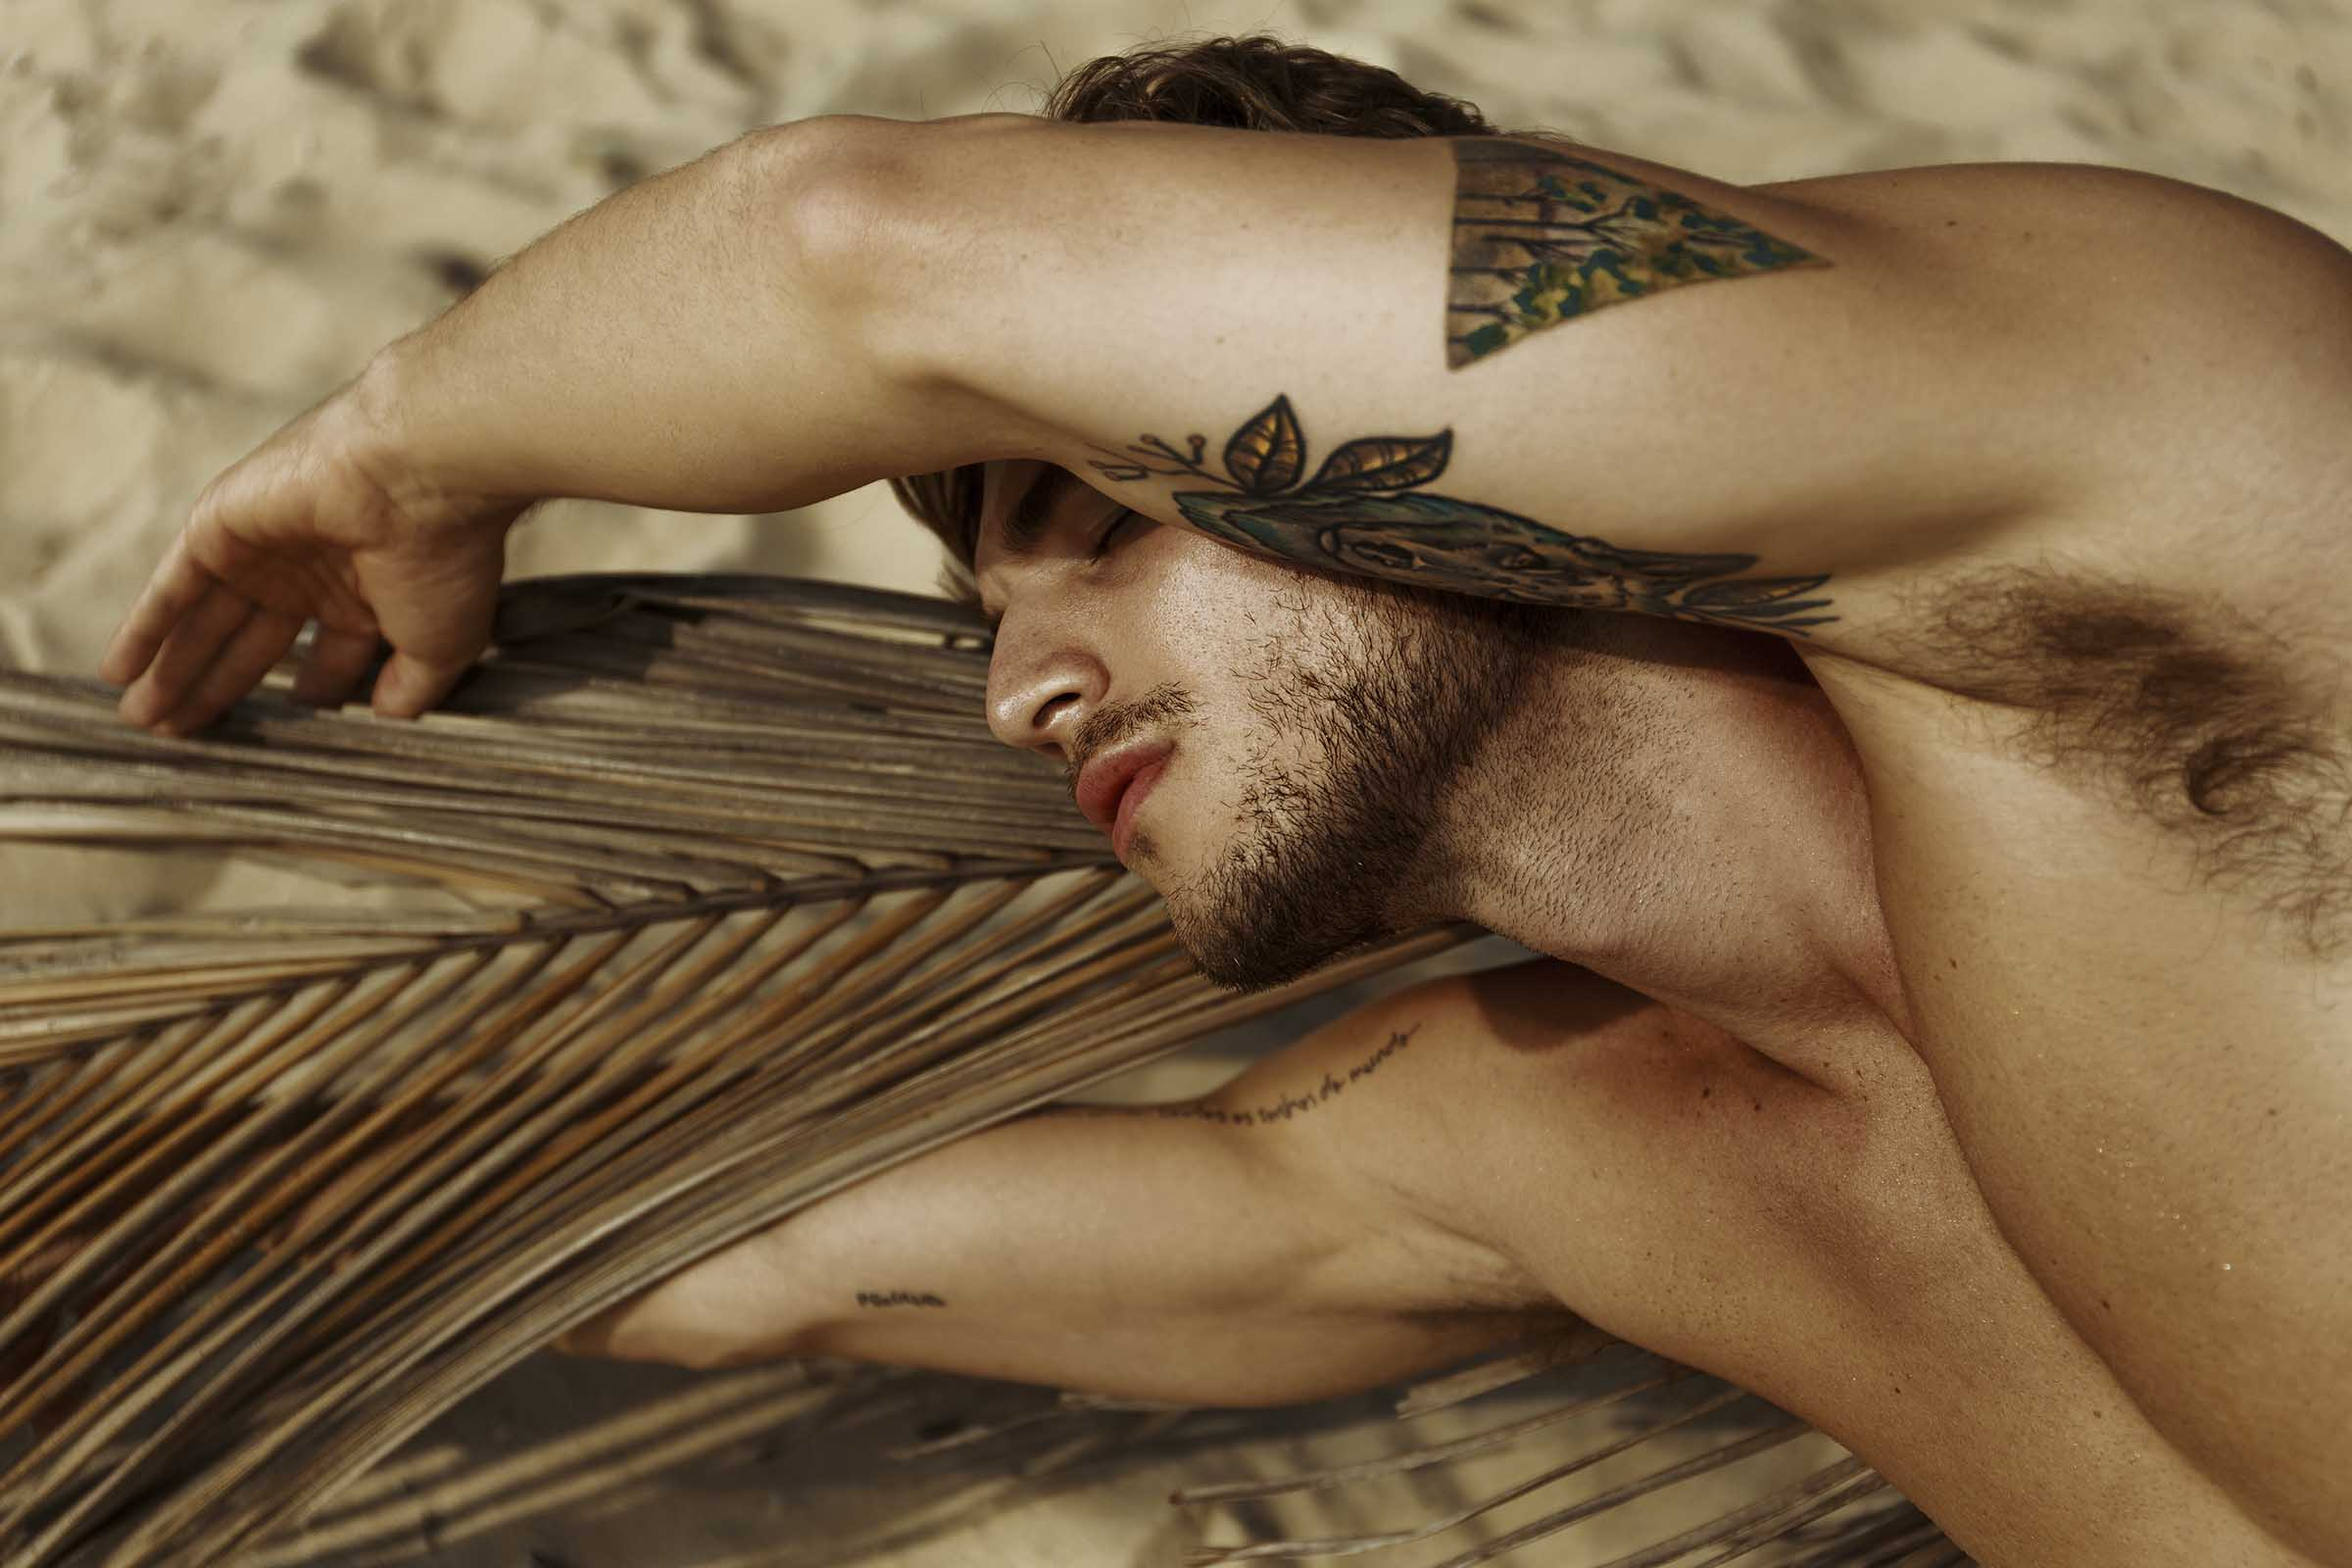 Alex Trevelin by Anthenor Neto for Brazilian Male Model